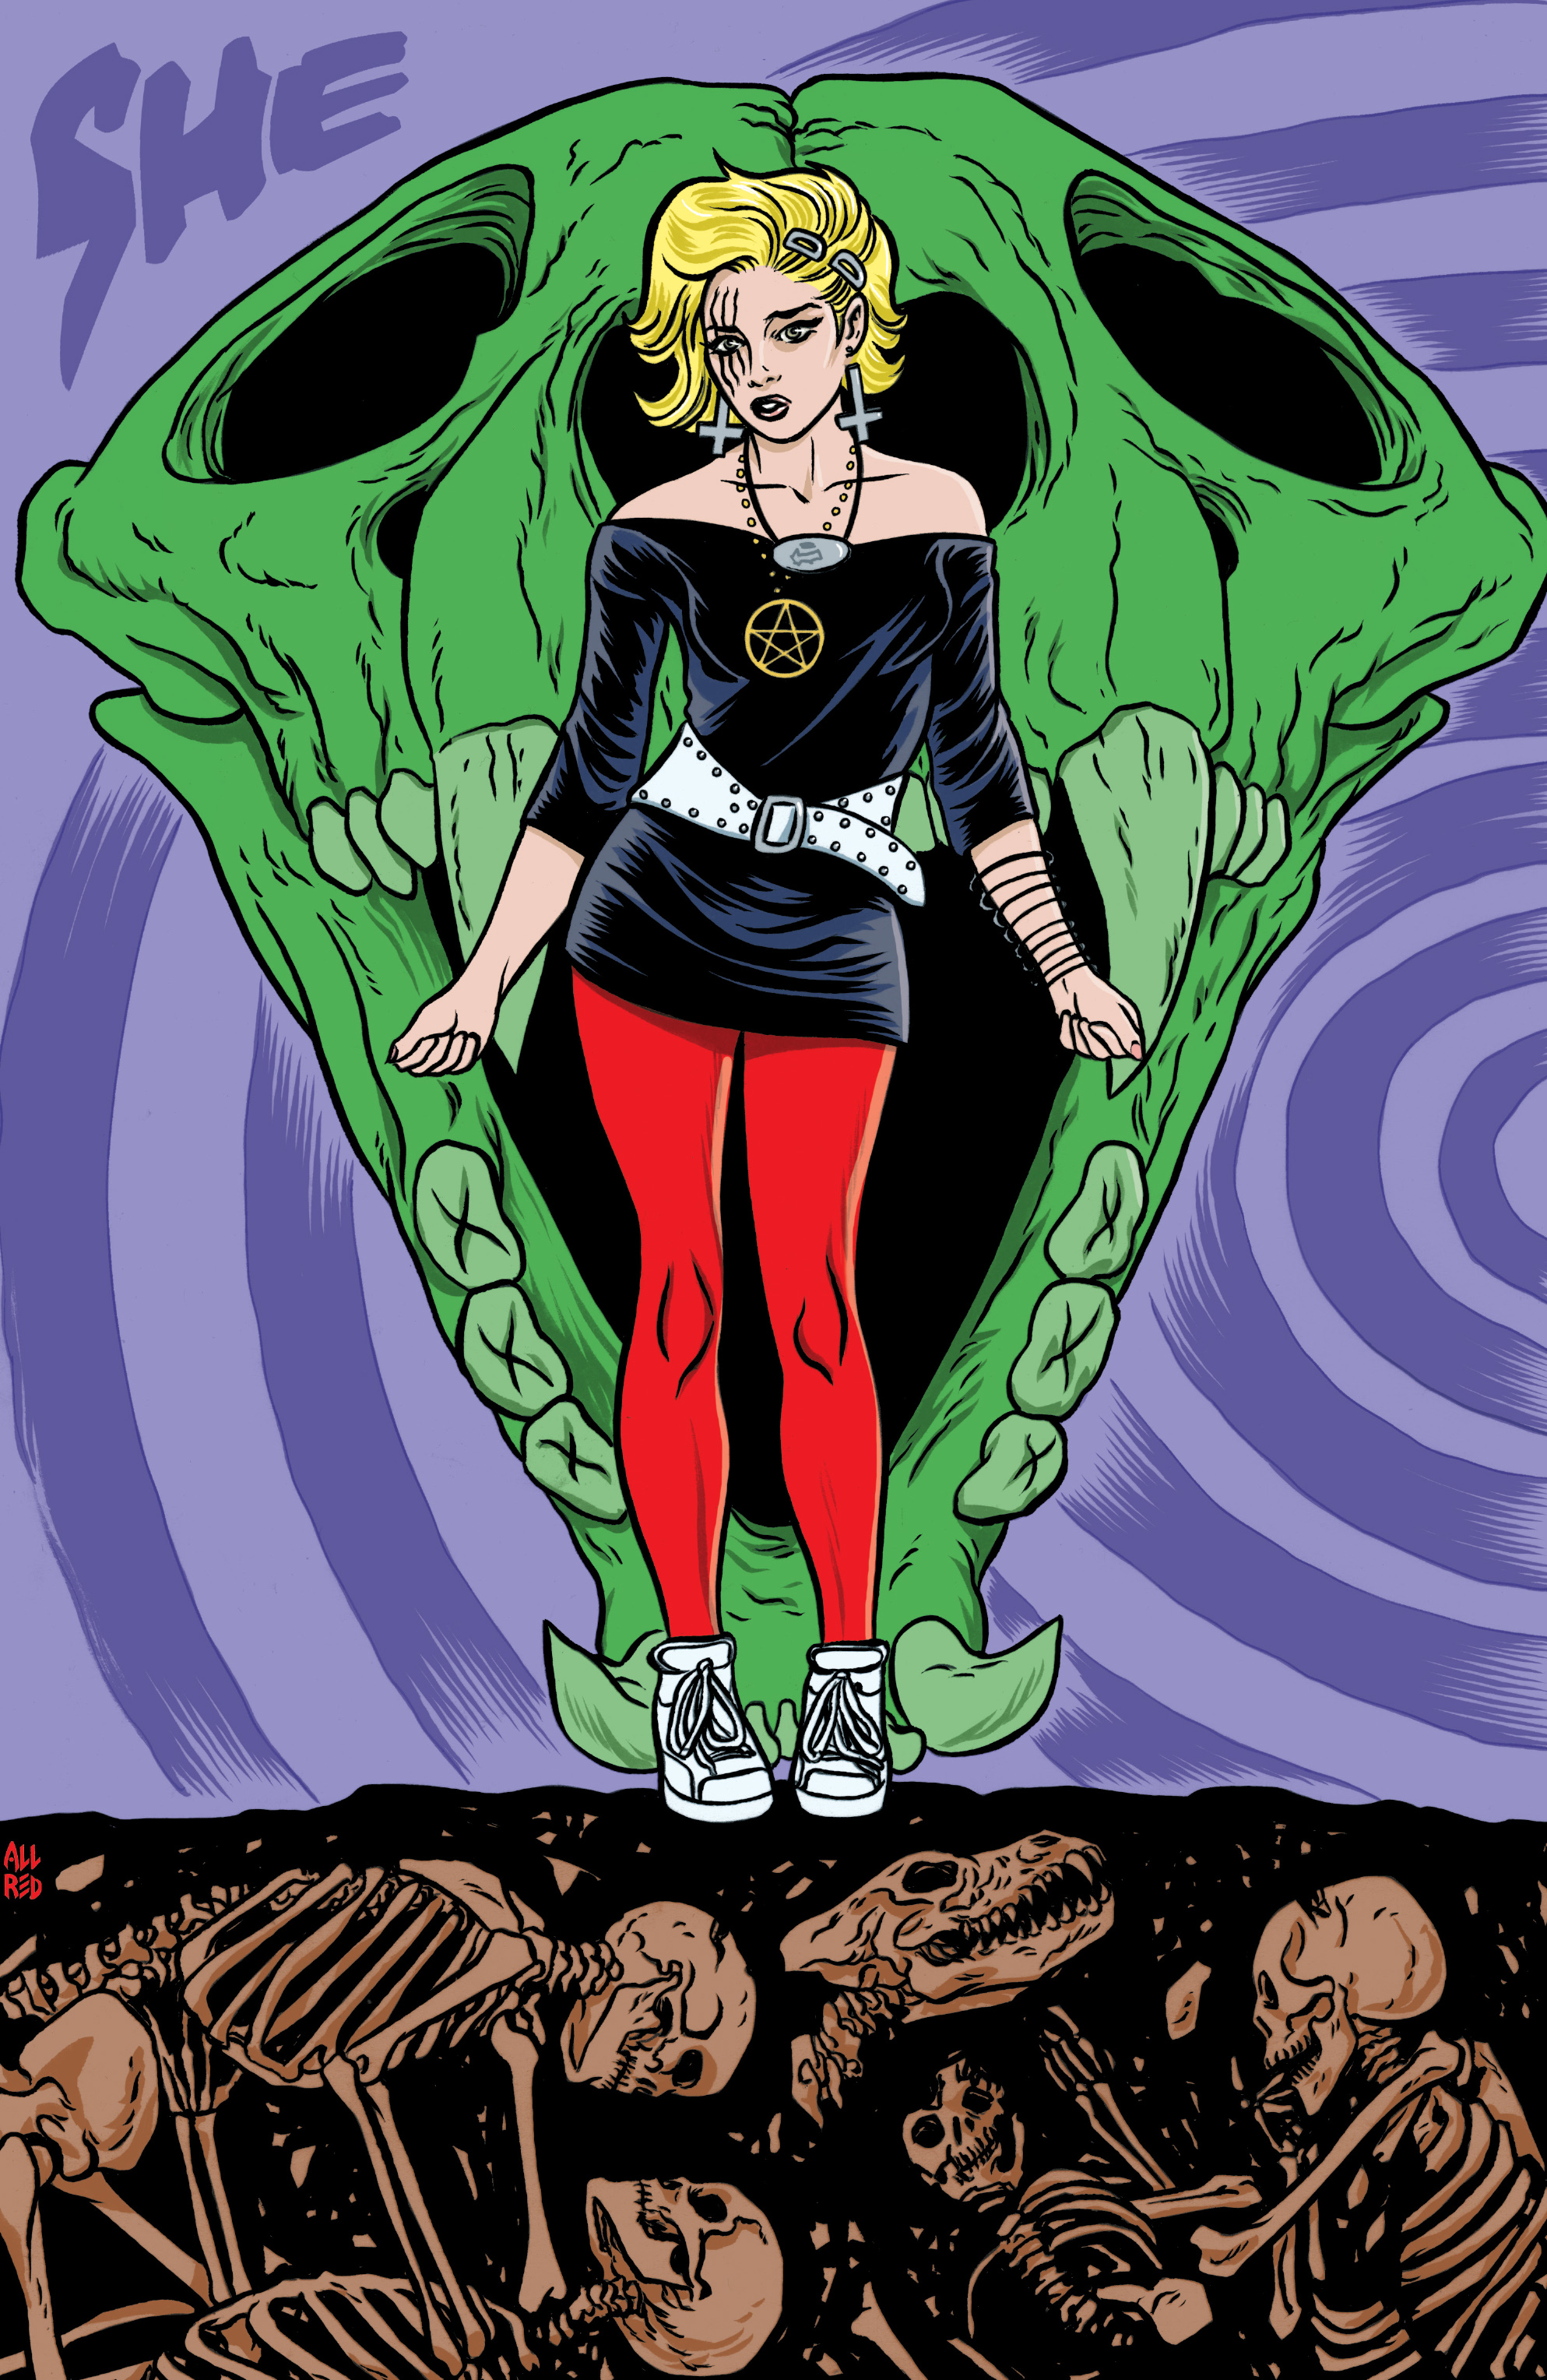 Read online She Wolf comic -  Issue #5 - 19